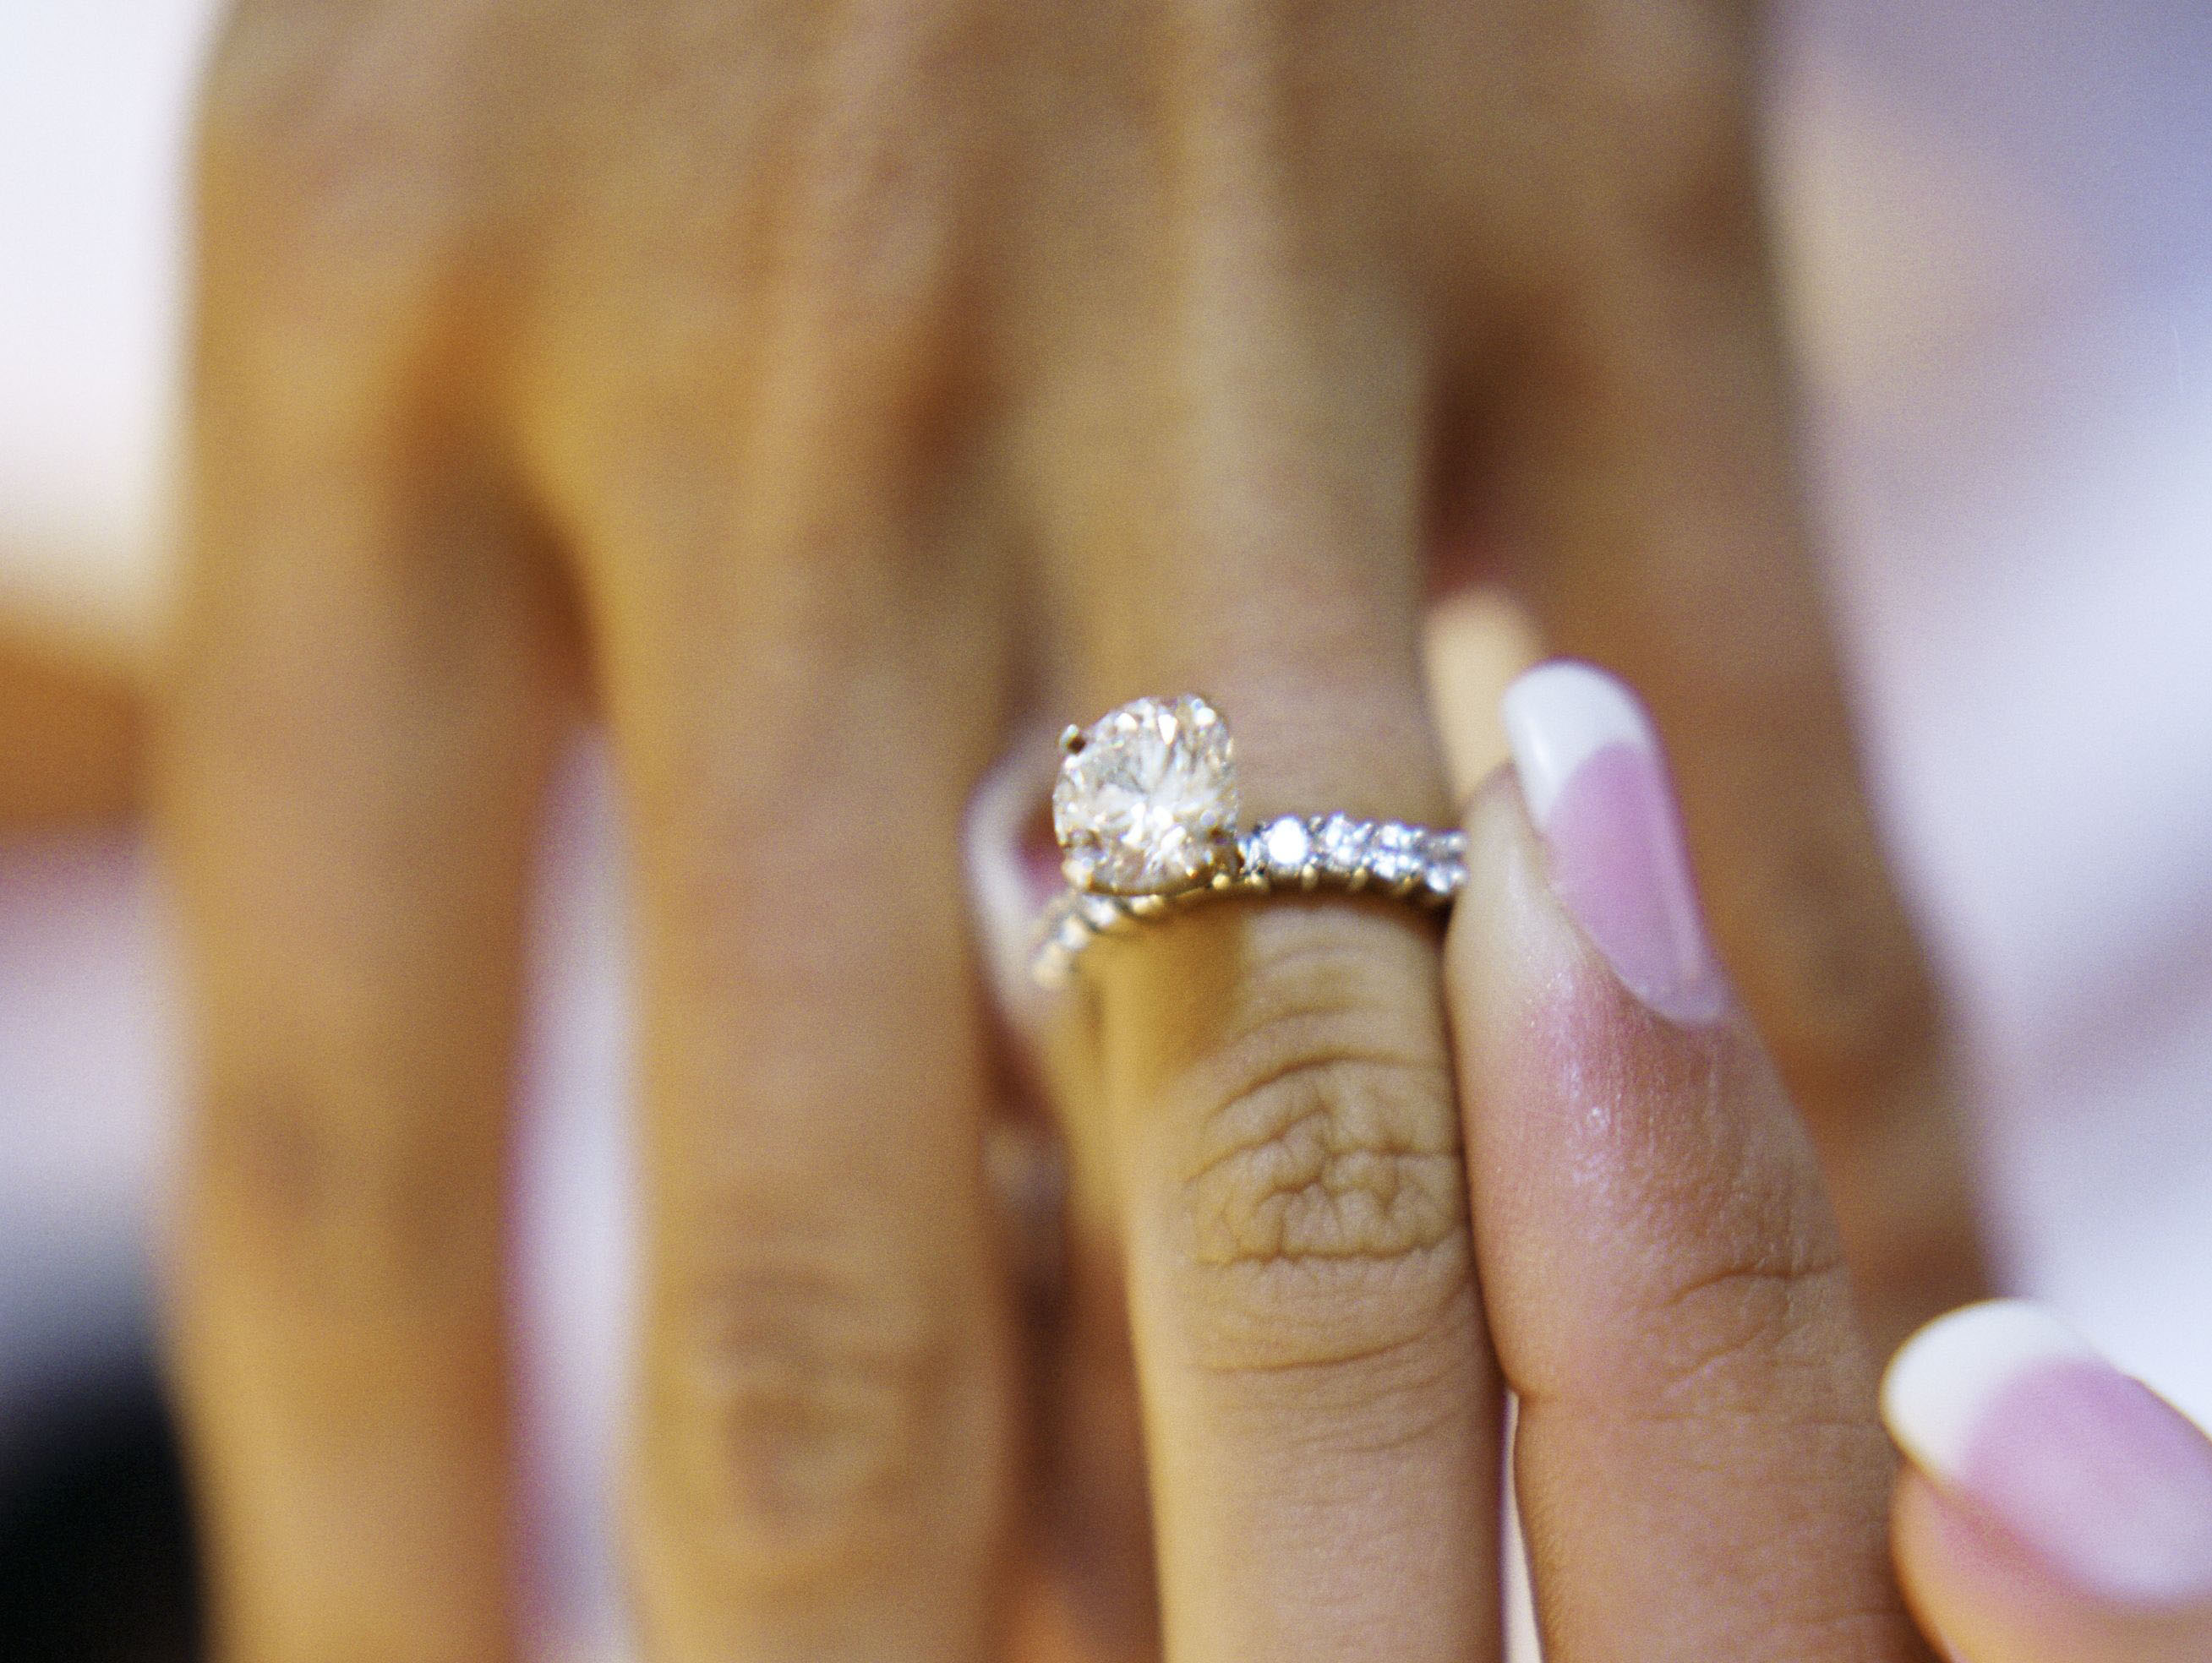 morena baccarin engagement ring inspiration, round solitaire high set pave